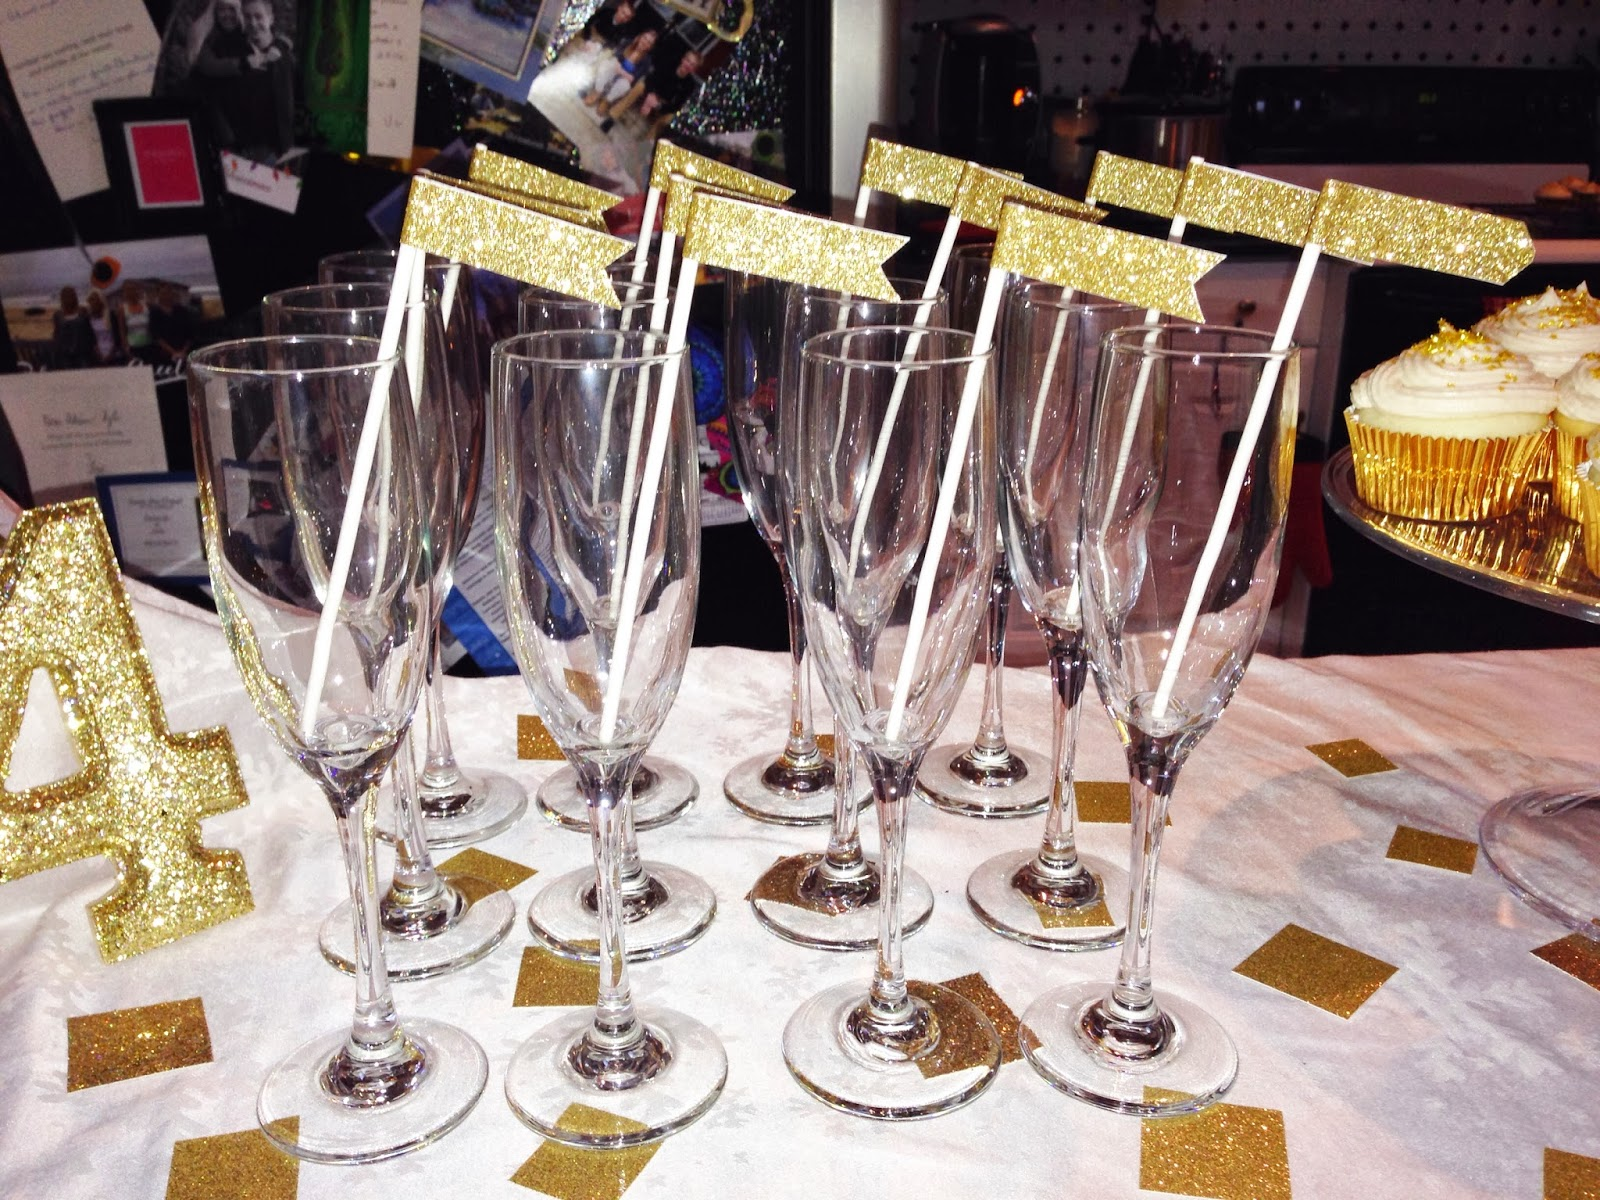 Glitter banner drink stirrers for New Years Eve | Choosing Happy Blog